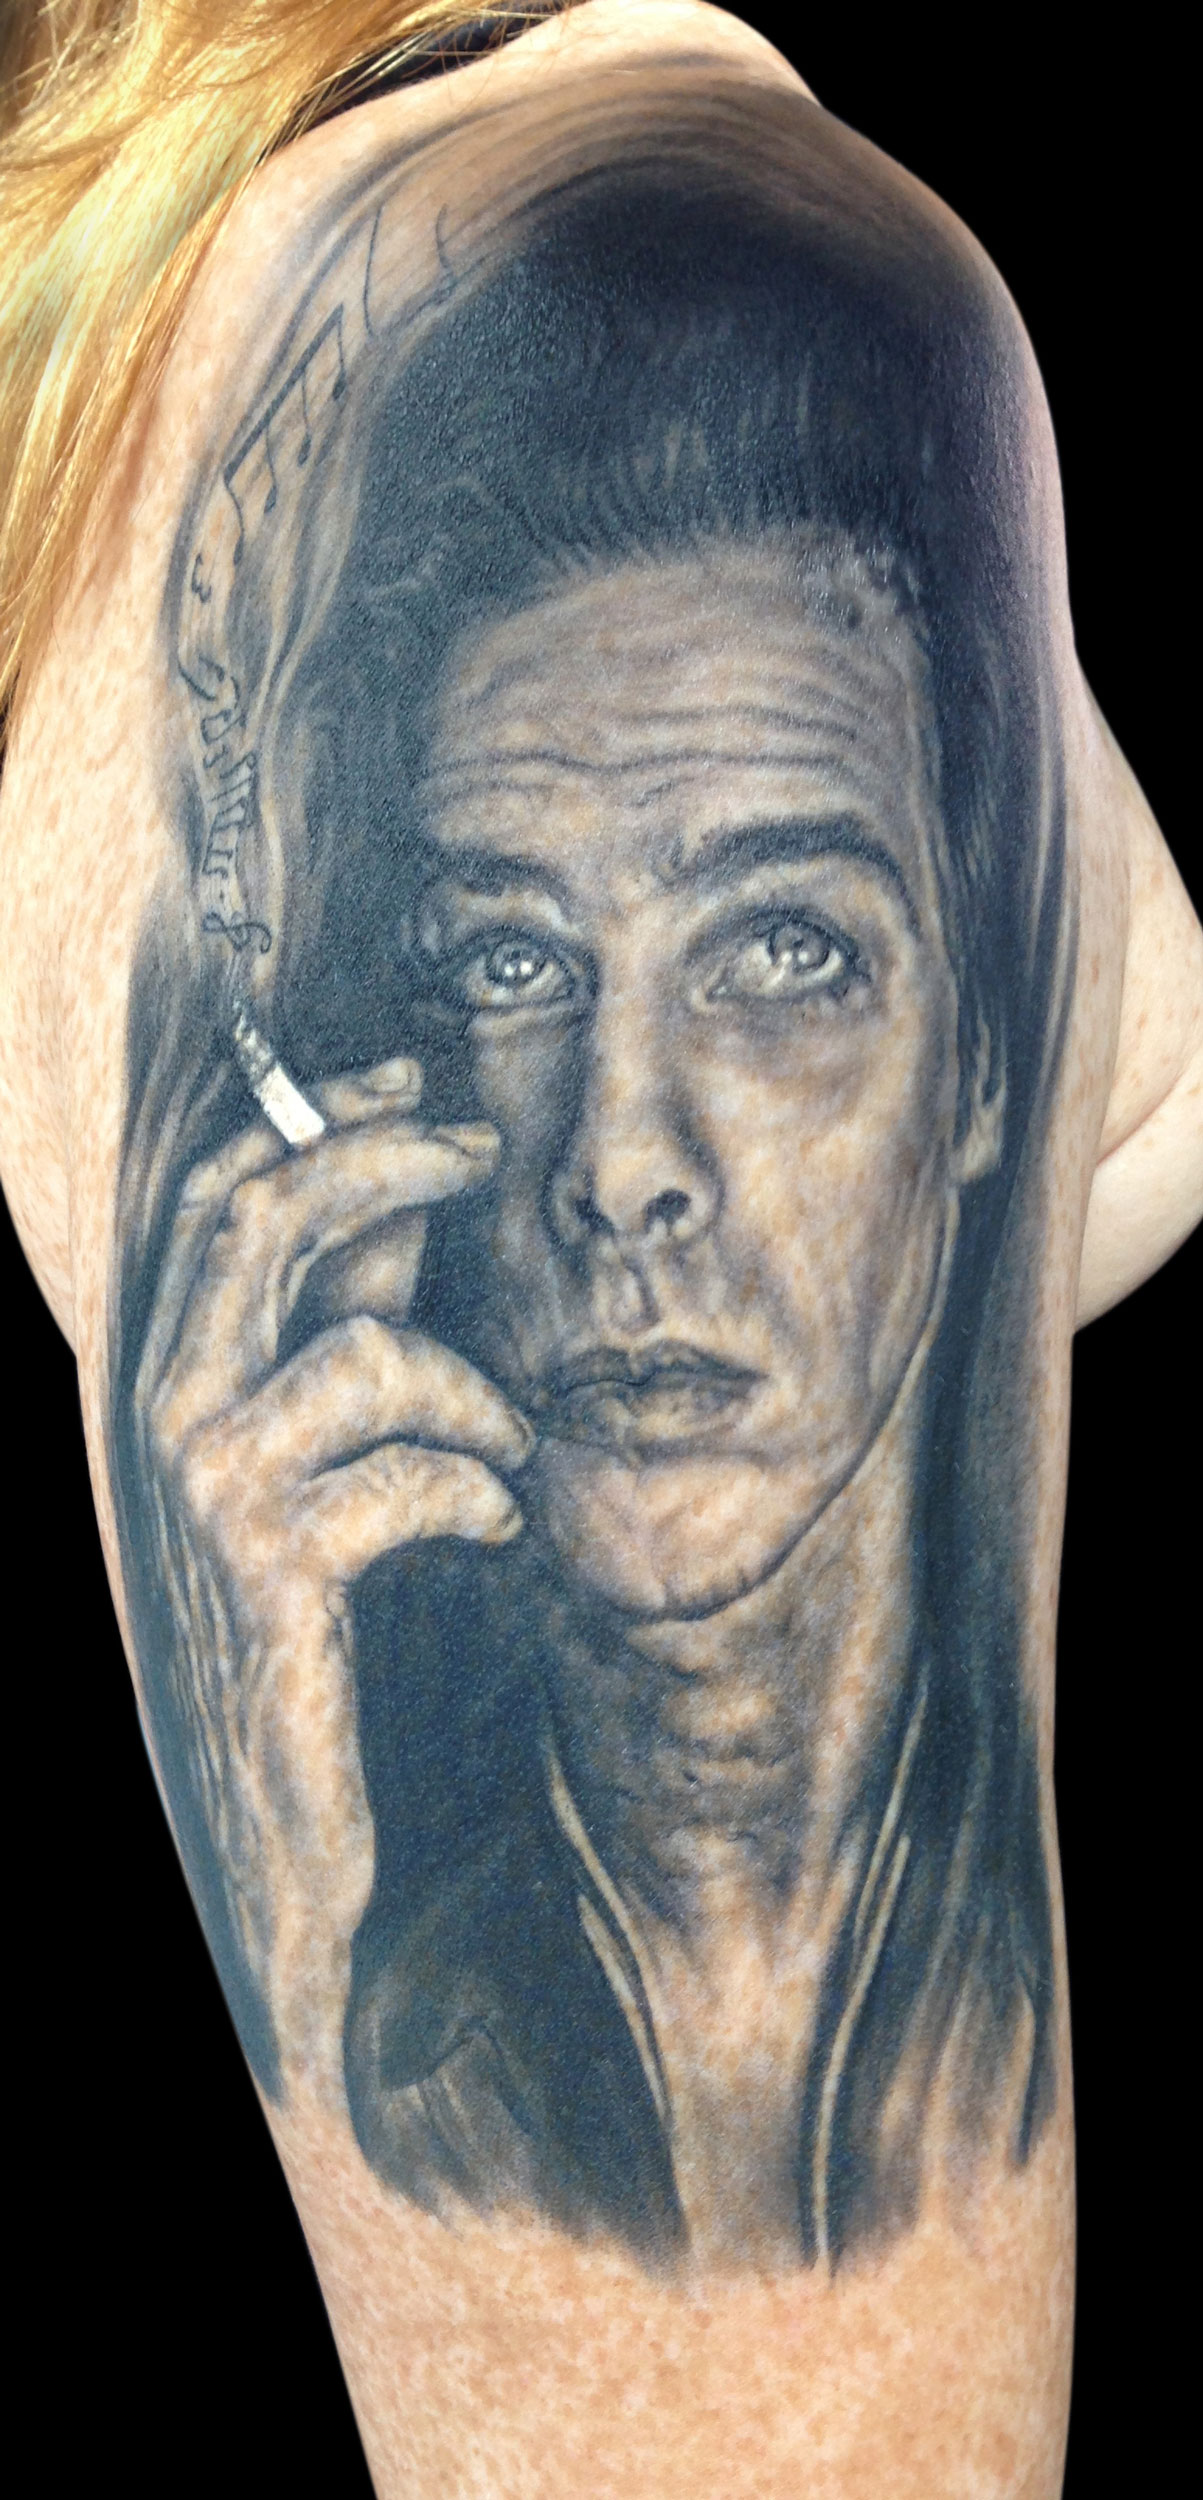 Black and Grey Nick Cave Portrait Tattoo with Musical Cigarette, (healed)